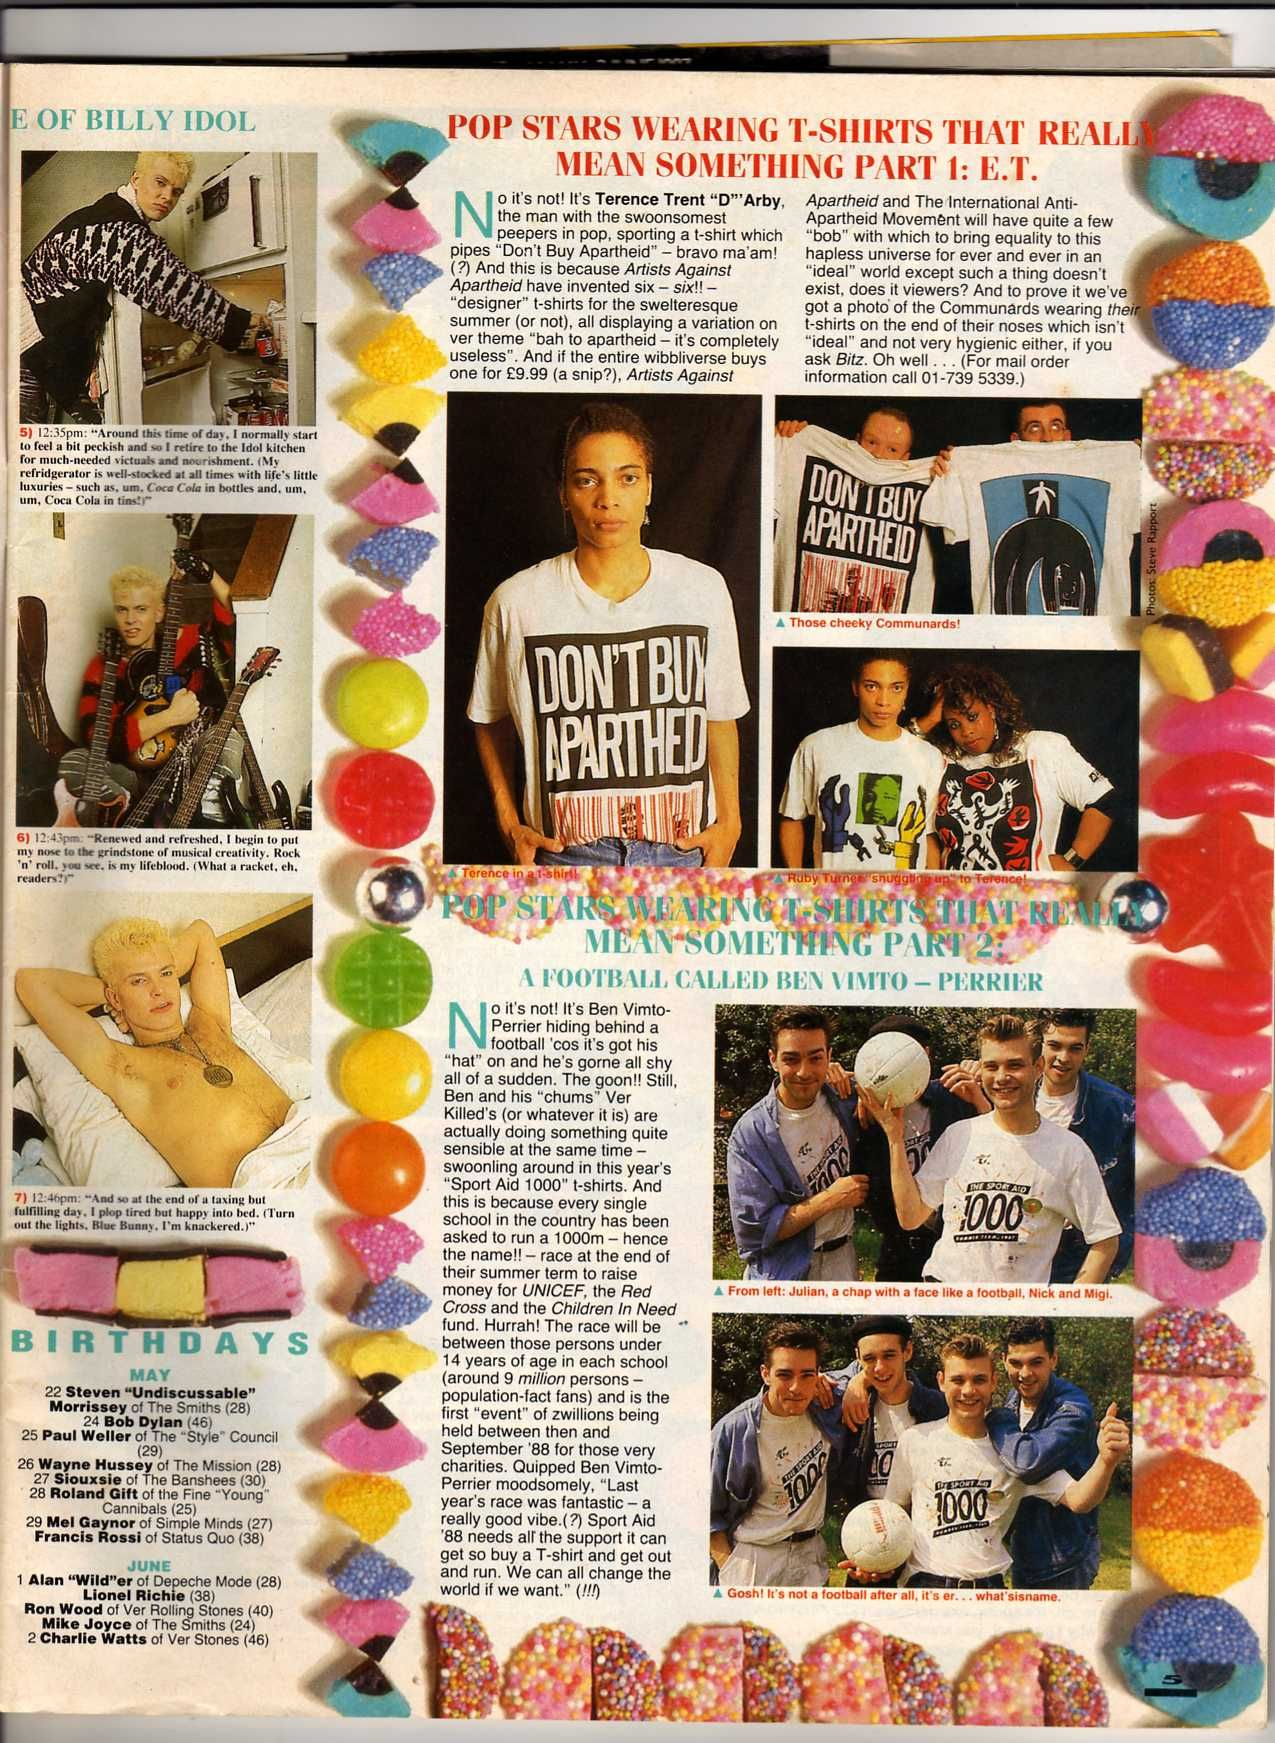 SMASH HITS SWEETS 3